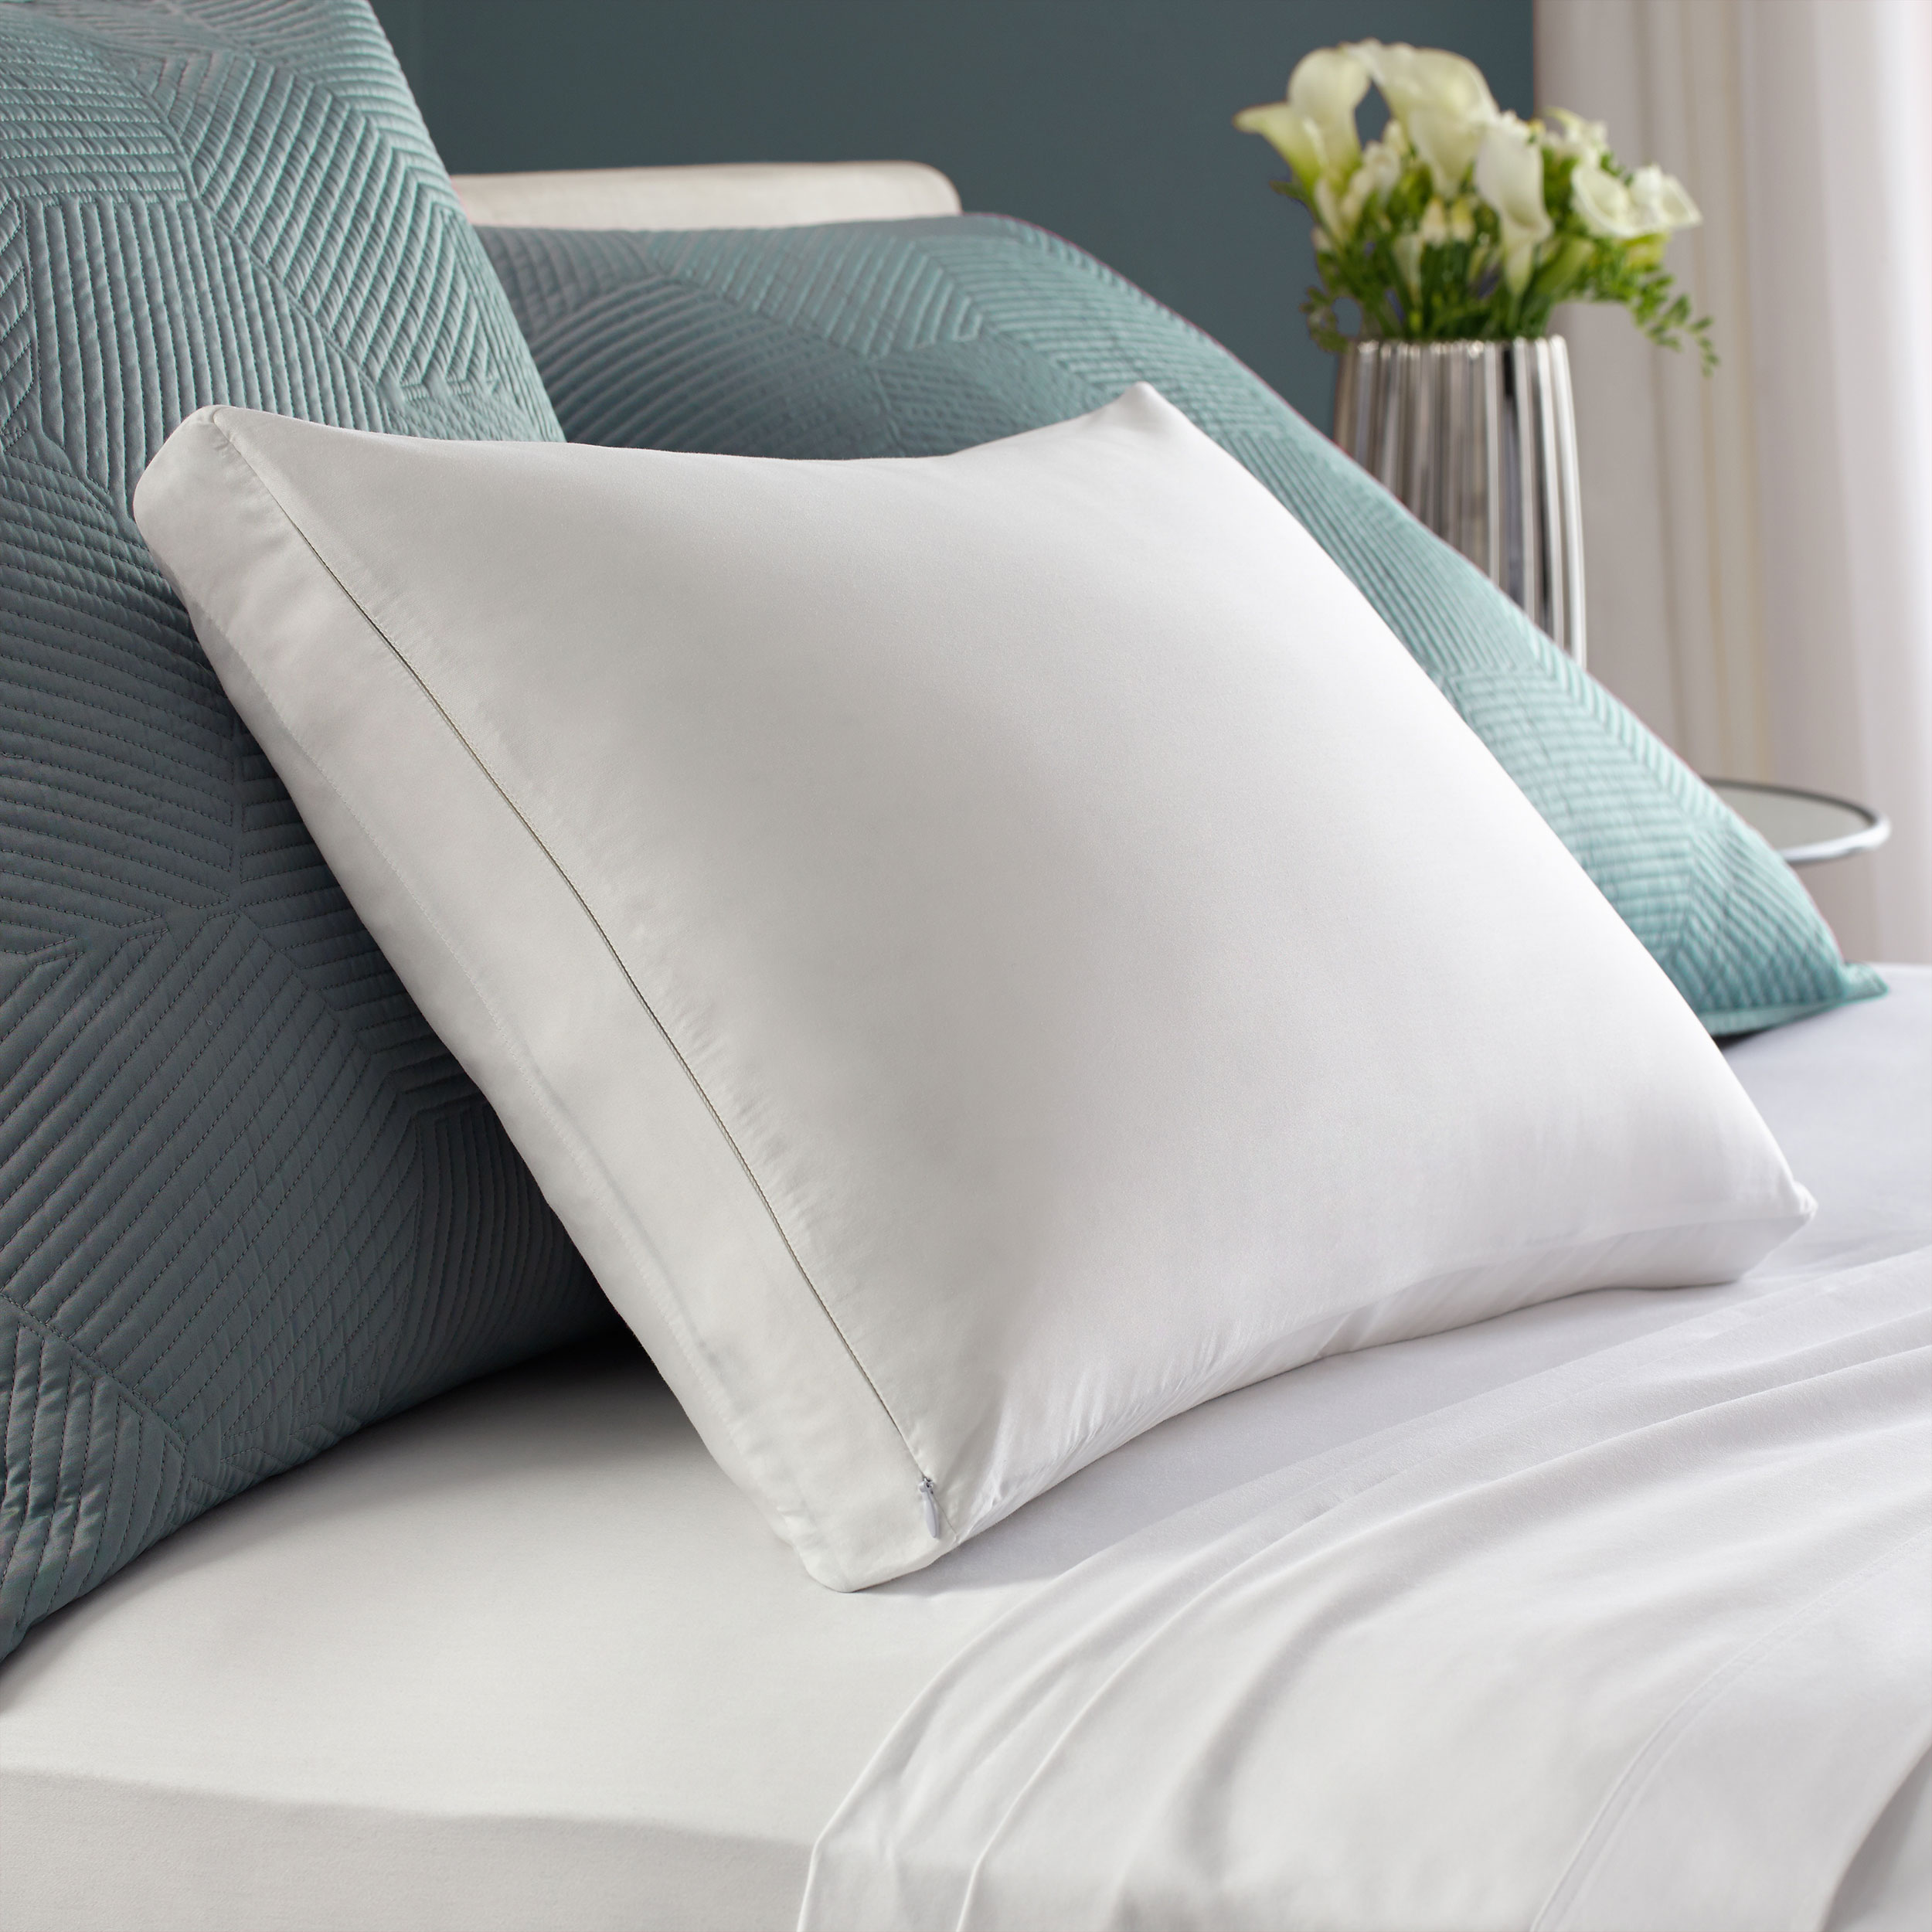 Gusset Pillow Protector Pacific Coast Feather